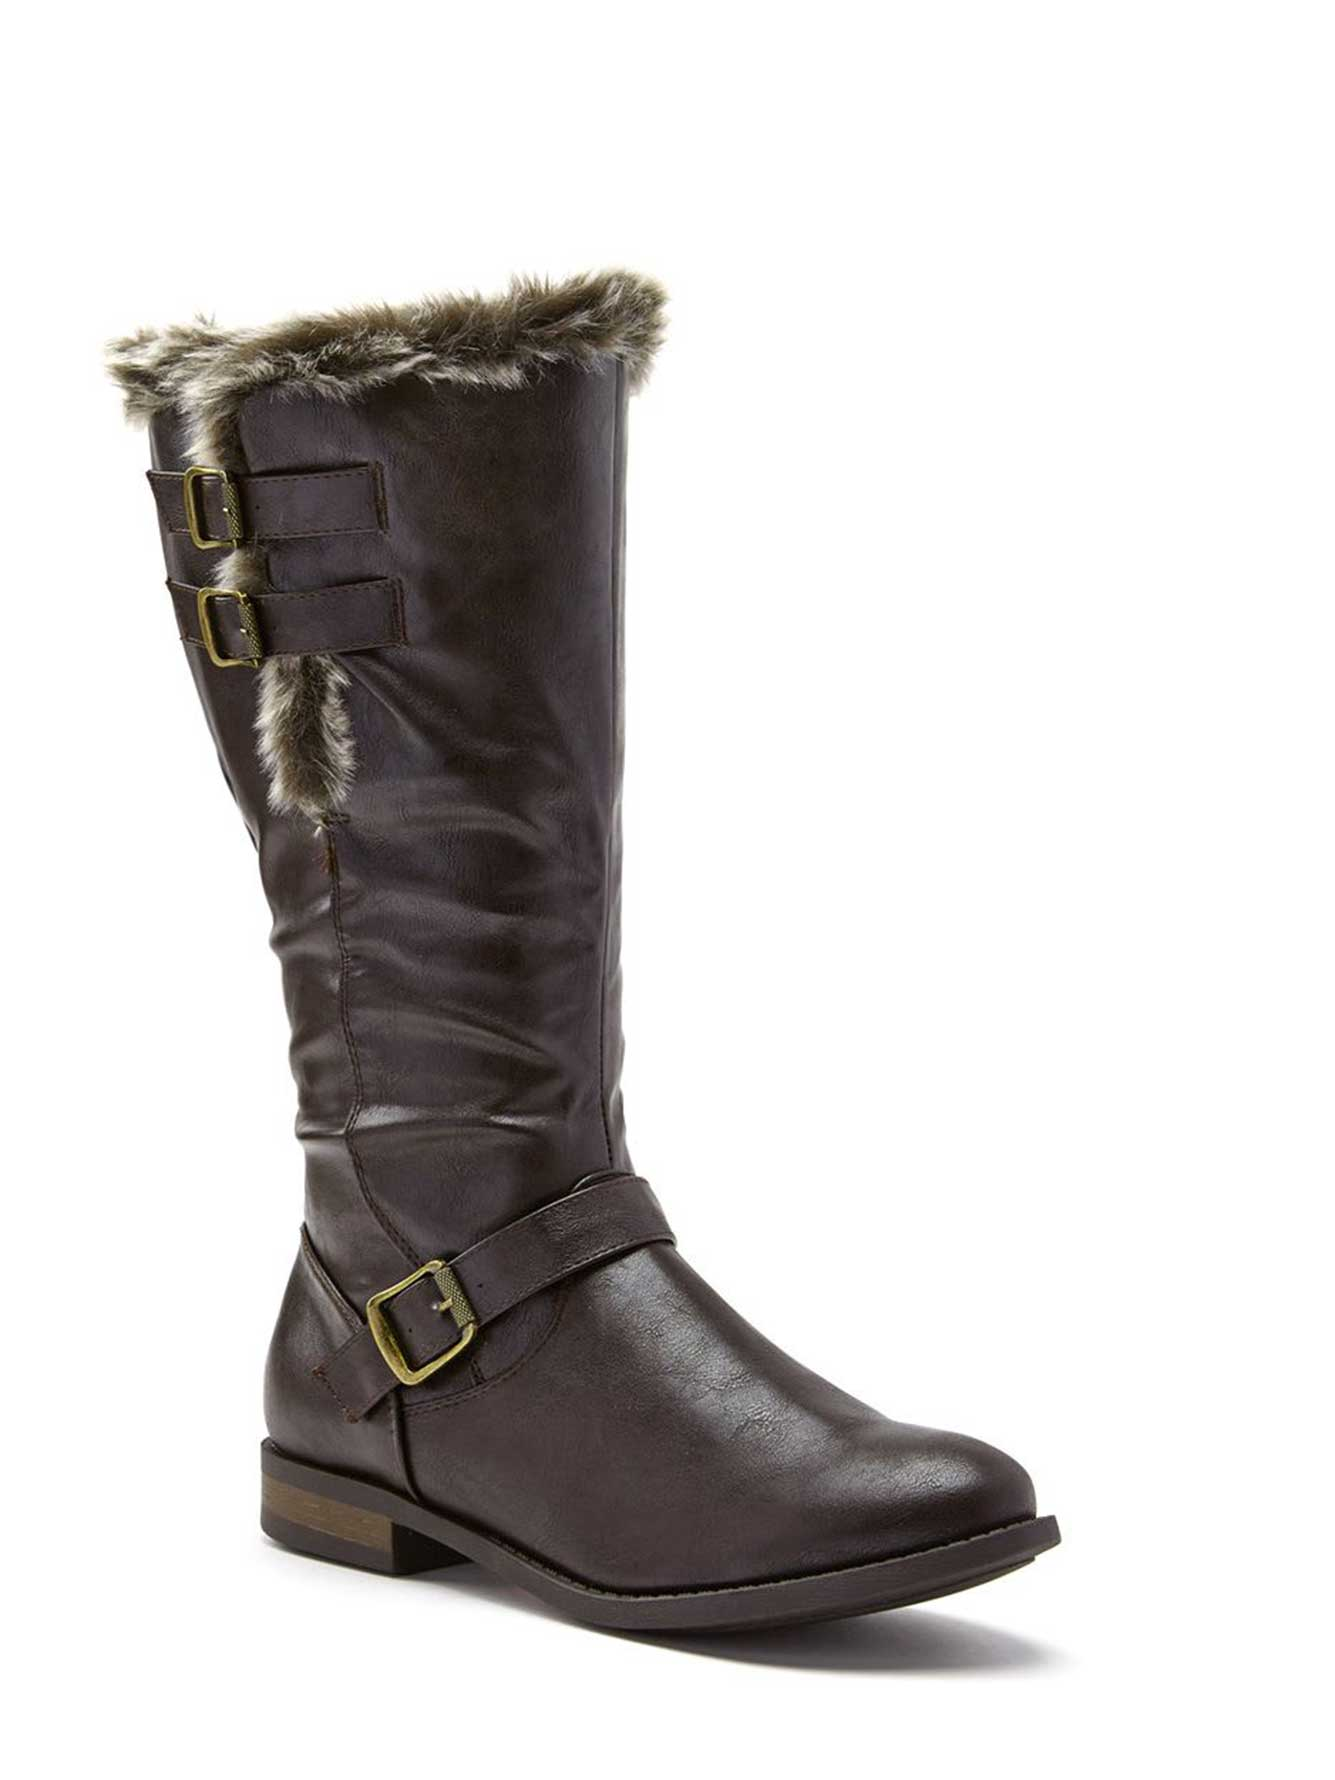 036371f2bfb Faux-Leather Wide-Width Winter Boots